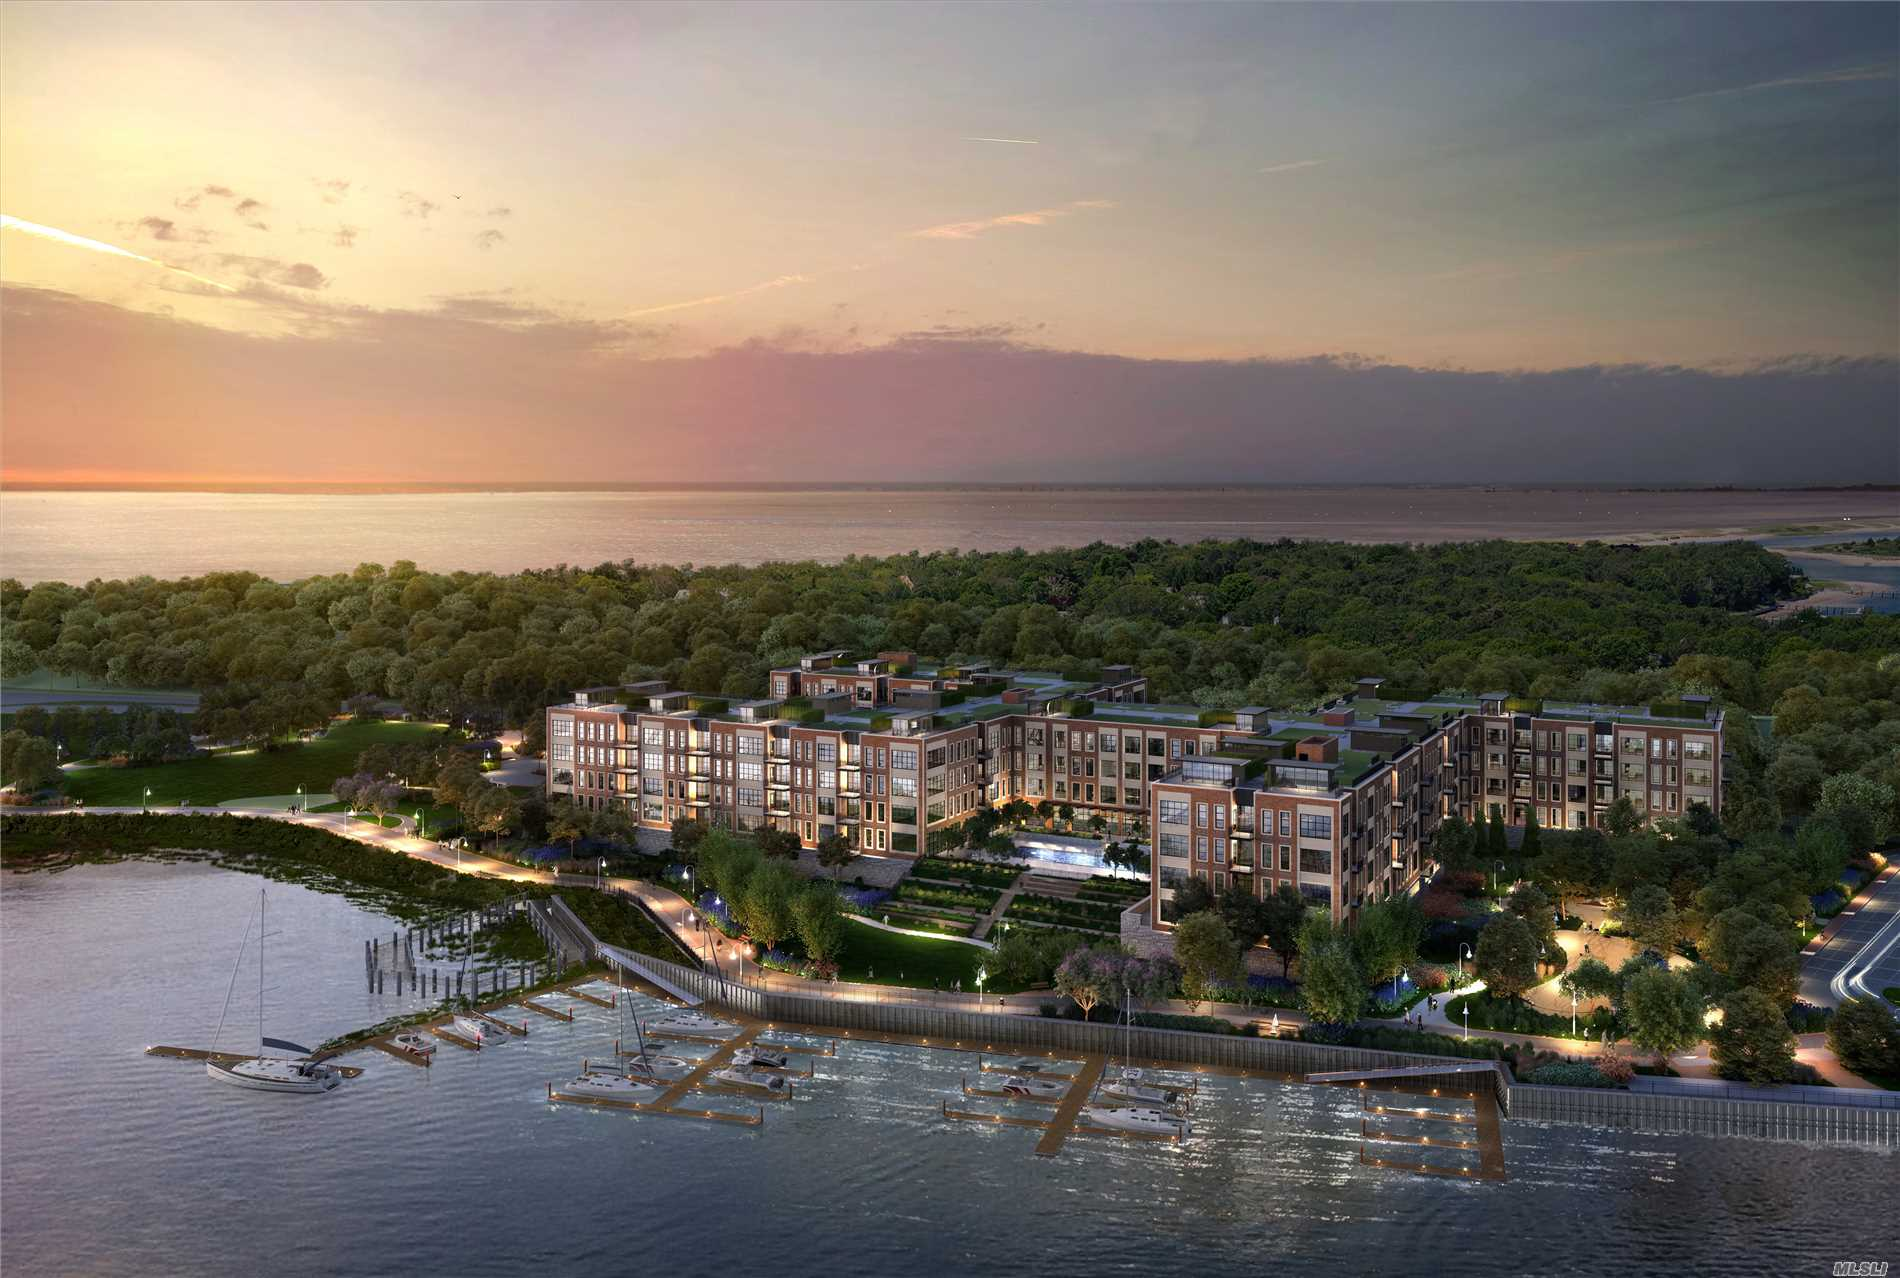 Property for sale at 100 Garvies Point Road # 1306, Glen Cove NY 11542, Glen Cove,  New York 11542